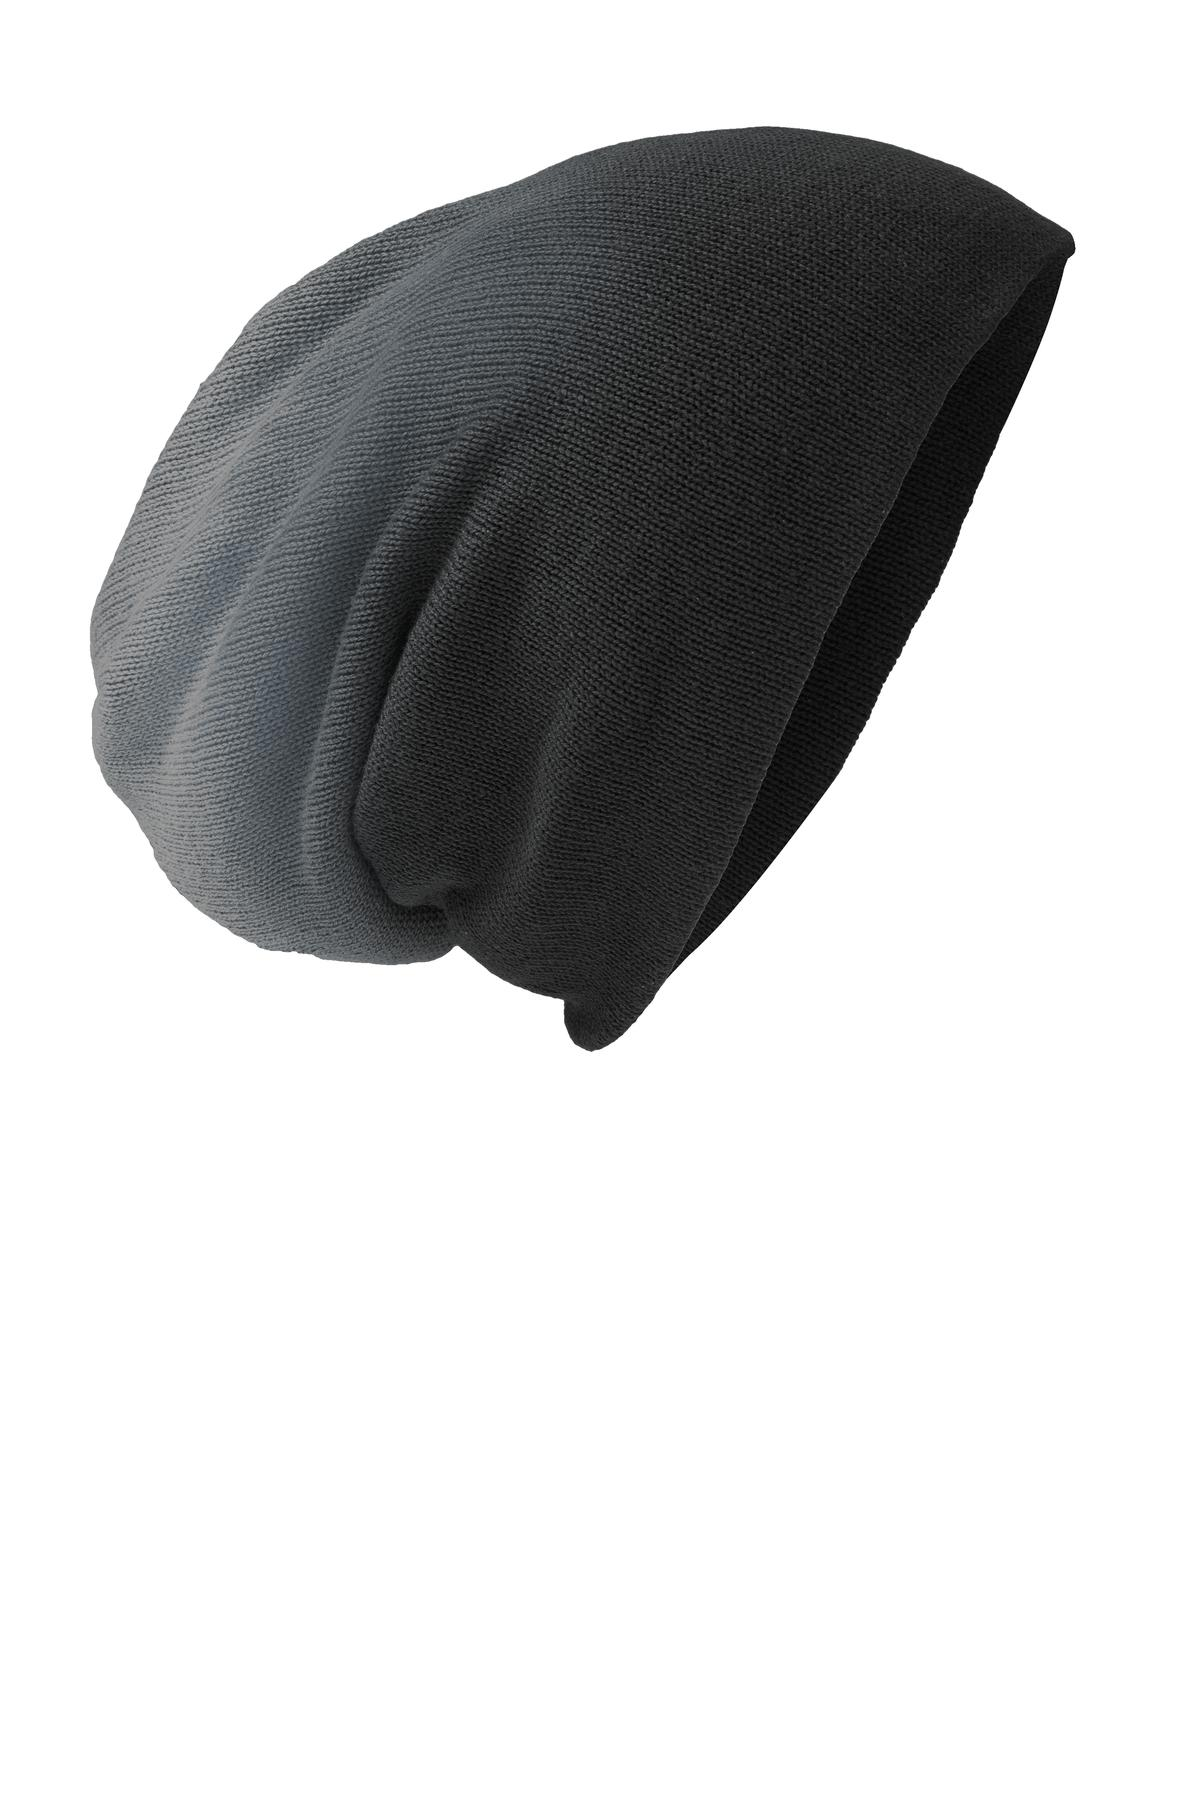 District ®  Slouch Beanie DT618 - Black Dip Dye